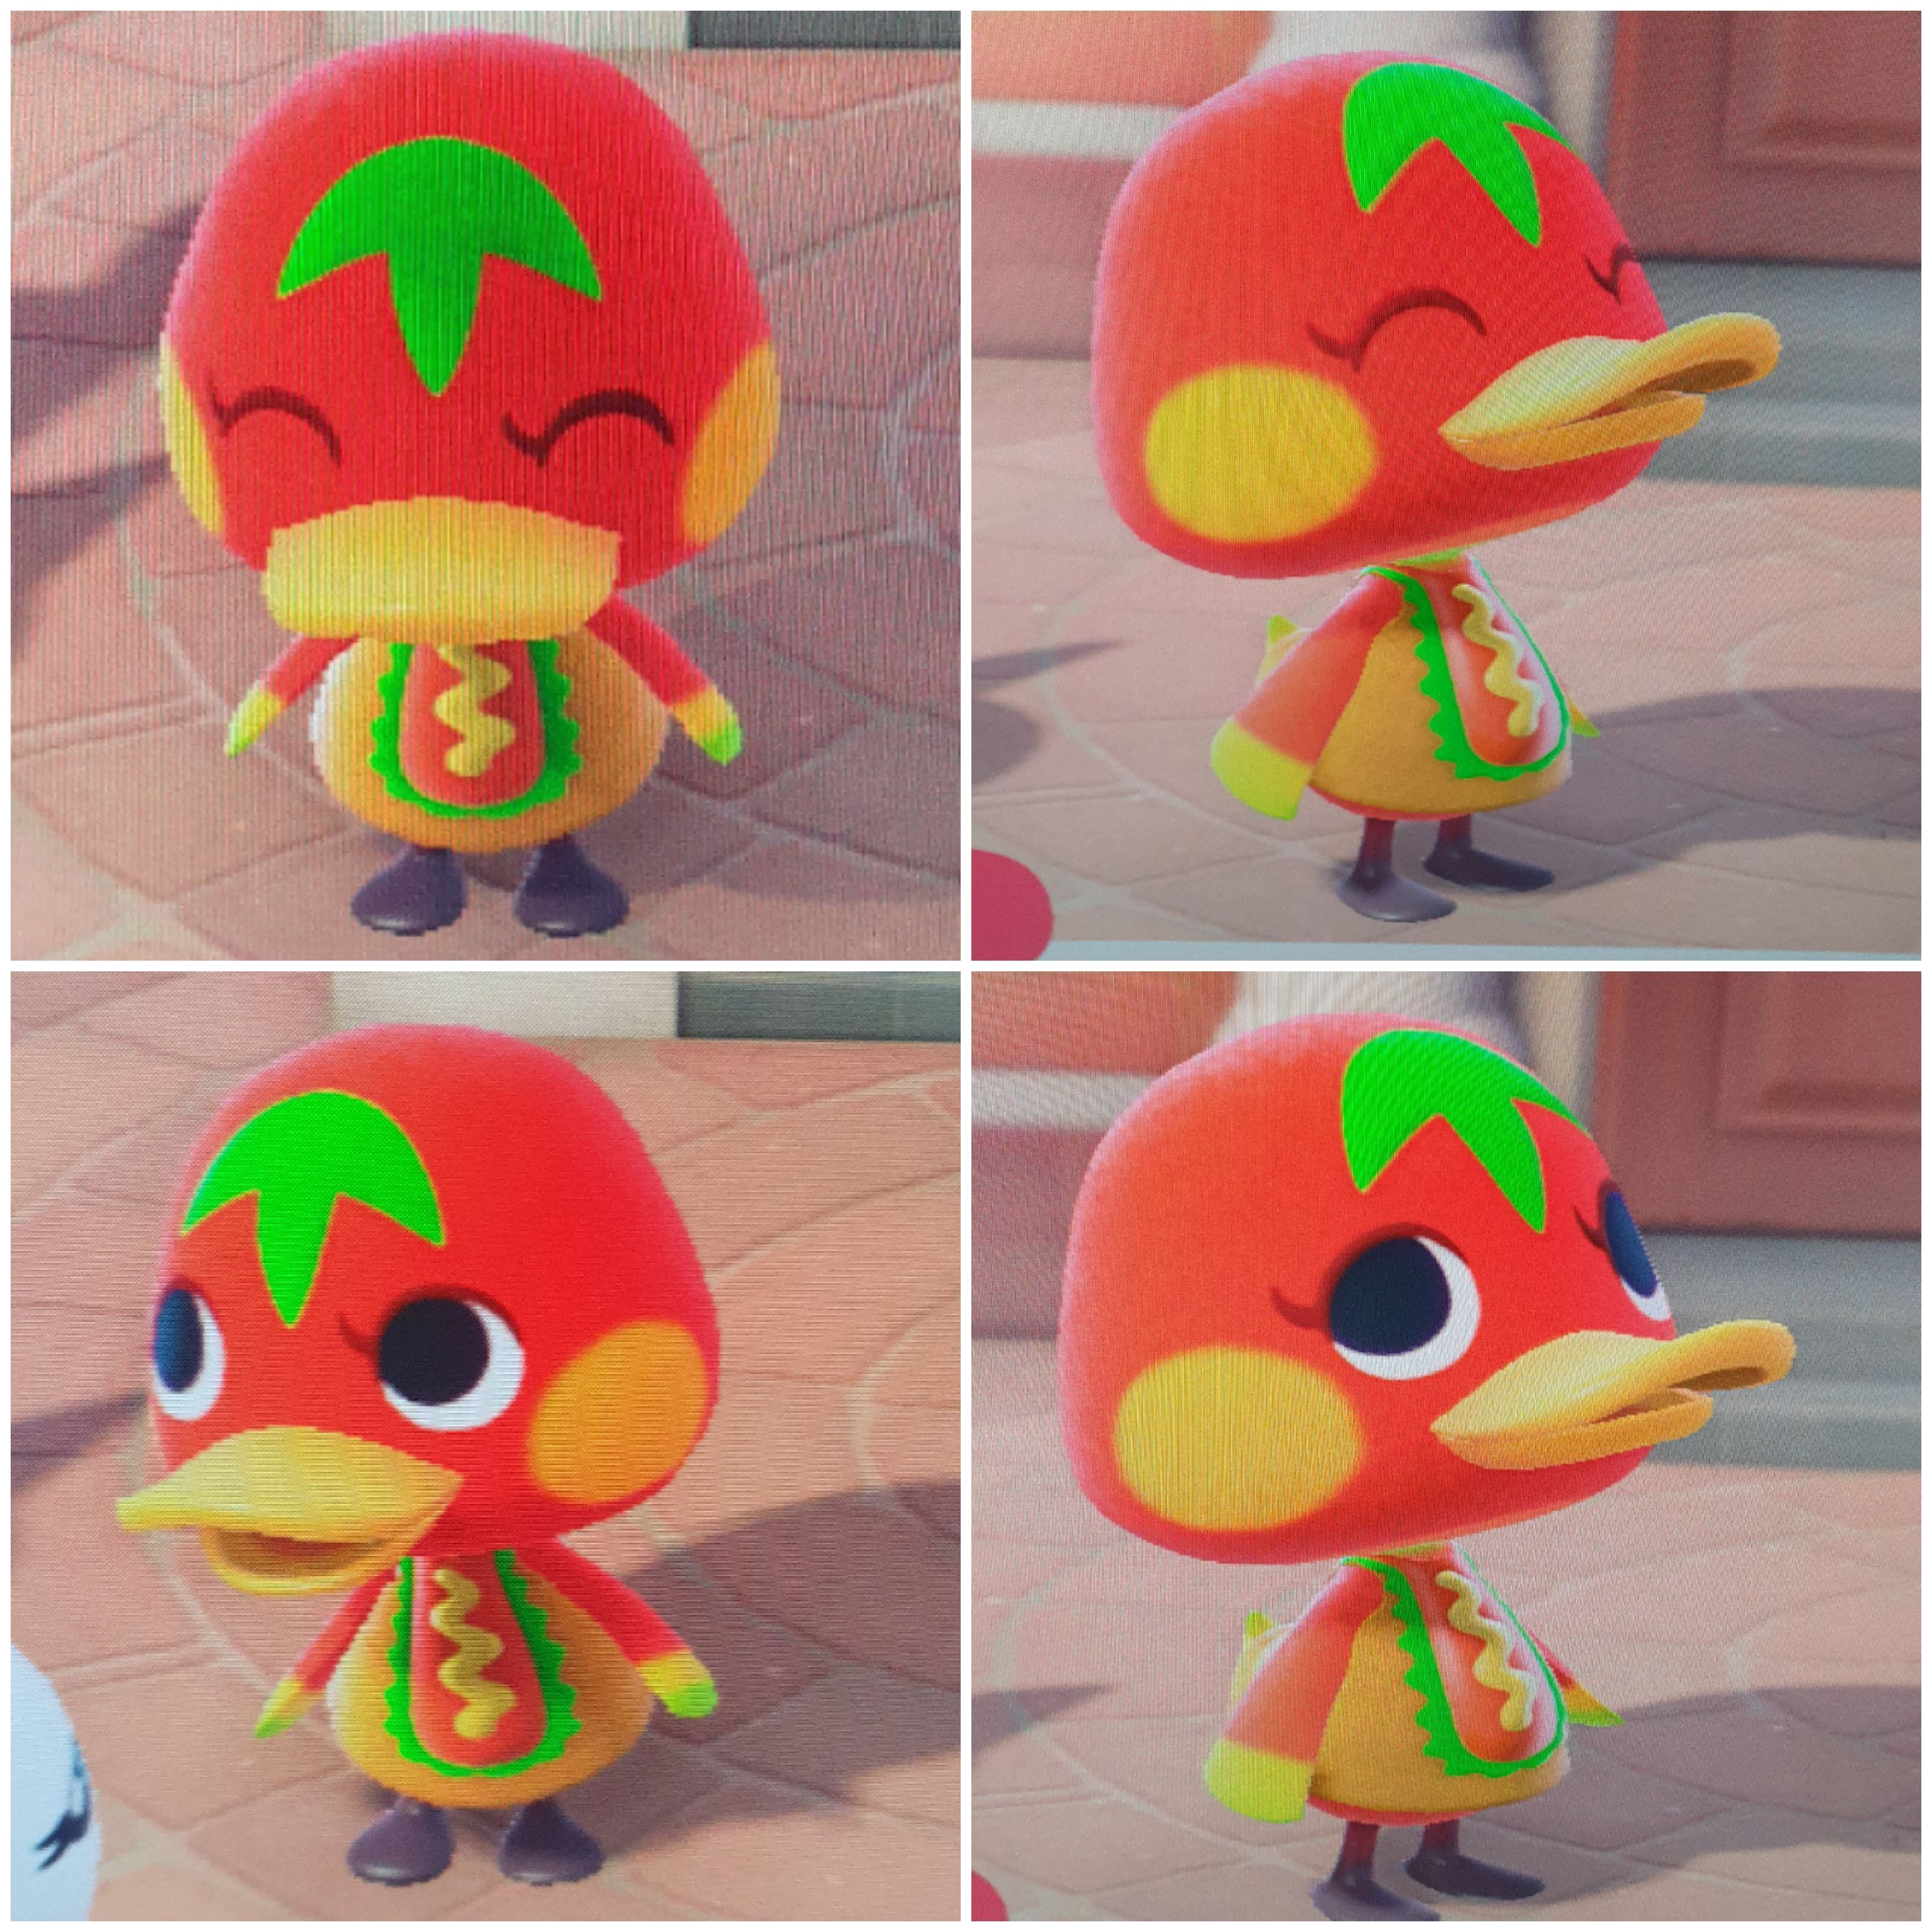 10++ Dog from animal crossing ideas in 2021